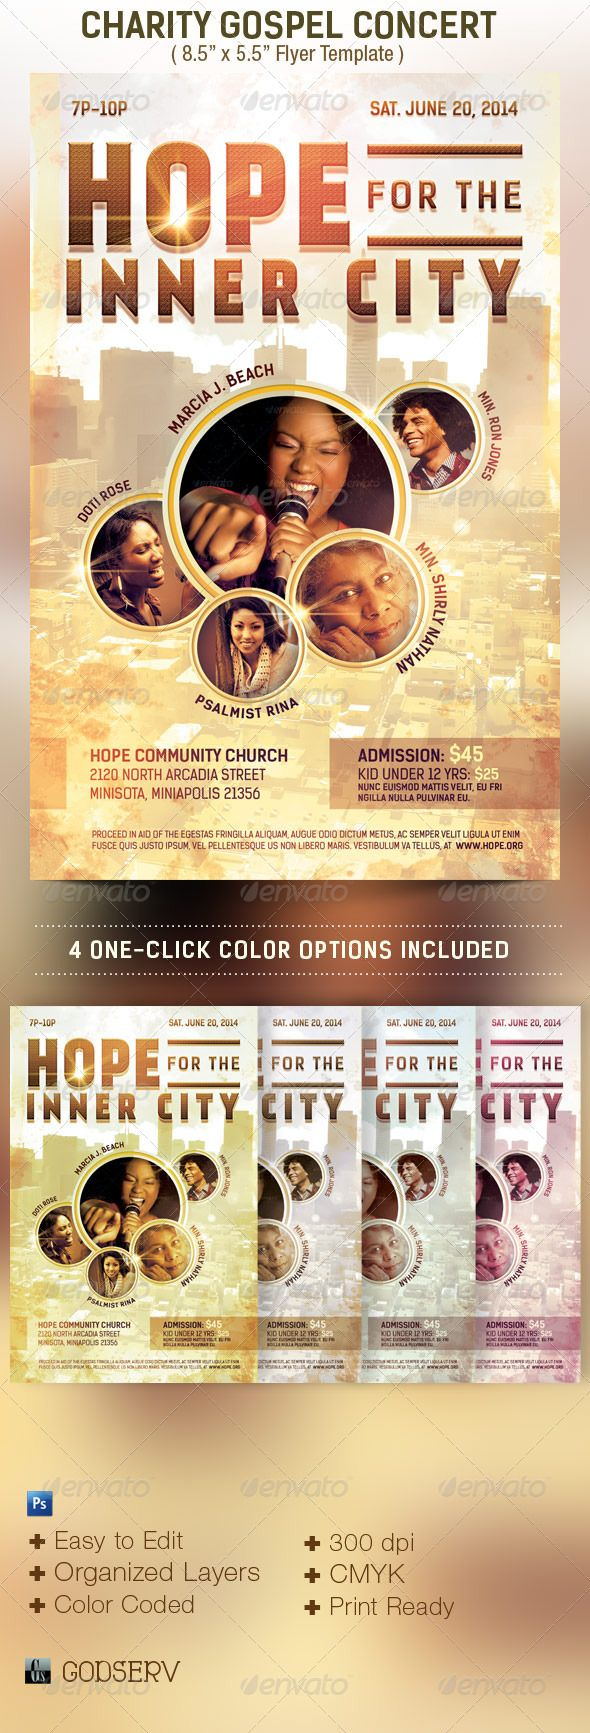 charity concert flyer template explosions christian church and the charity concert church flyer template is geared towards usage for charity concerts general fundraisers